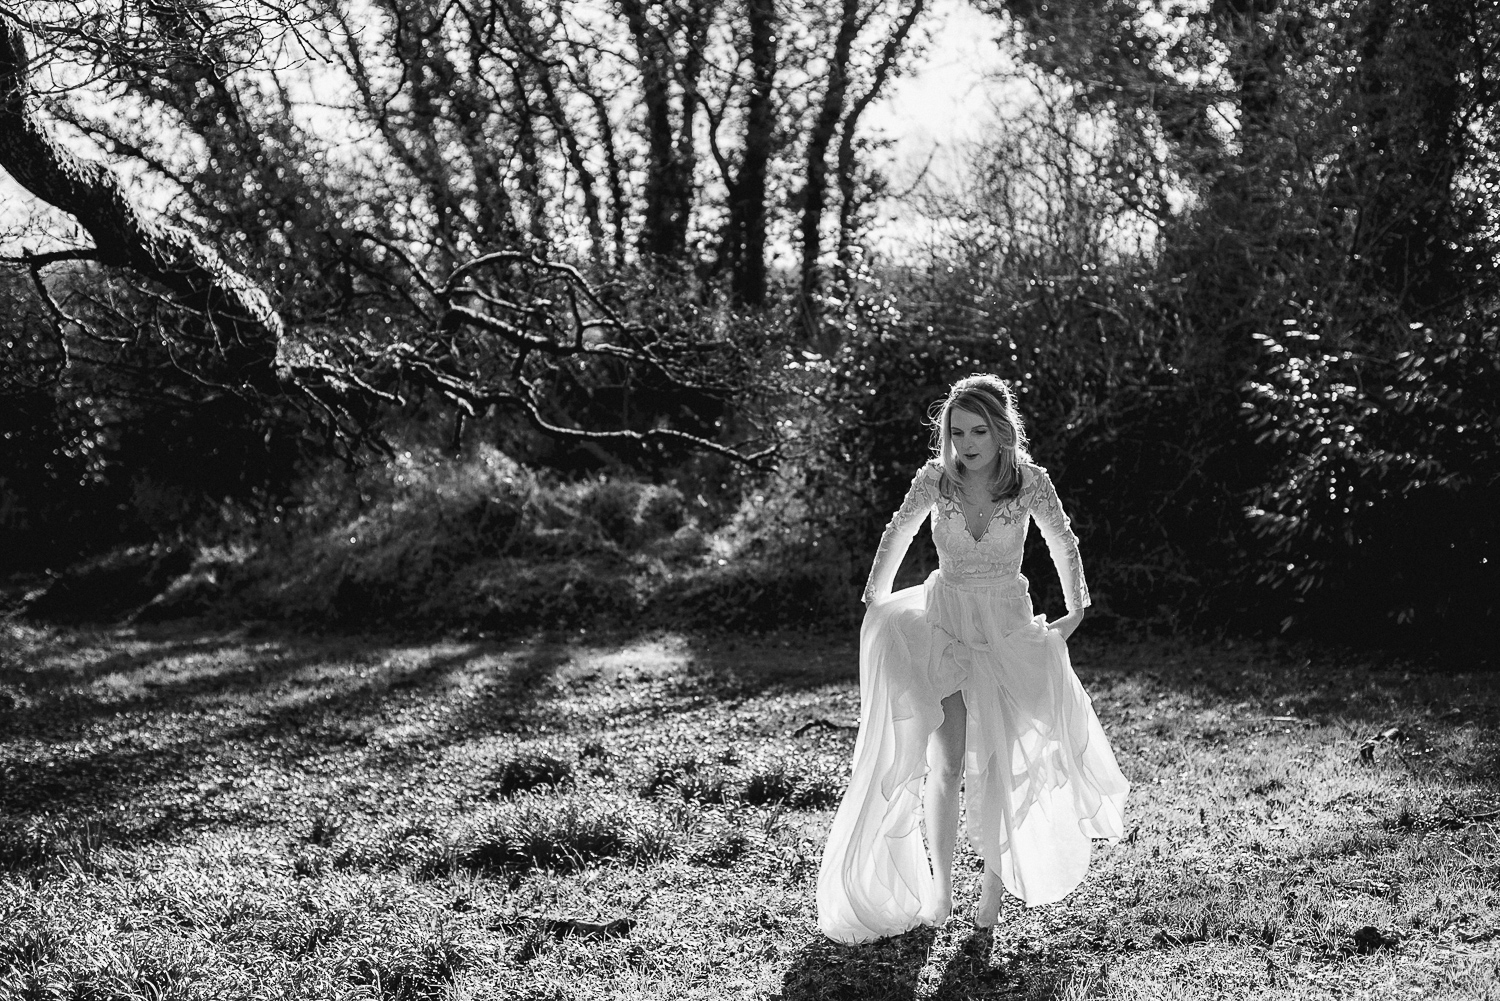 brown-trout-wedding-boho-festival-alternative-vinatge-bride-irish-photographer-northern-ireland-belfast-city-76